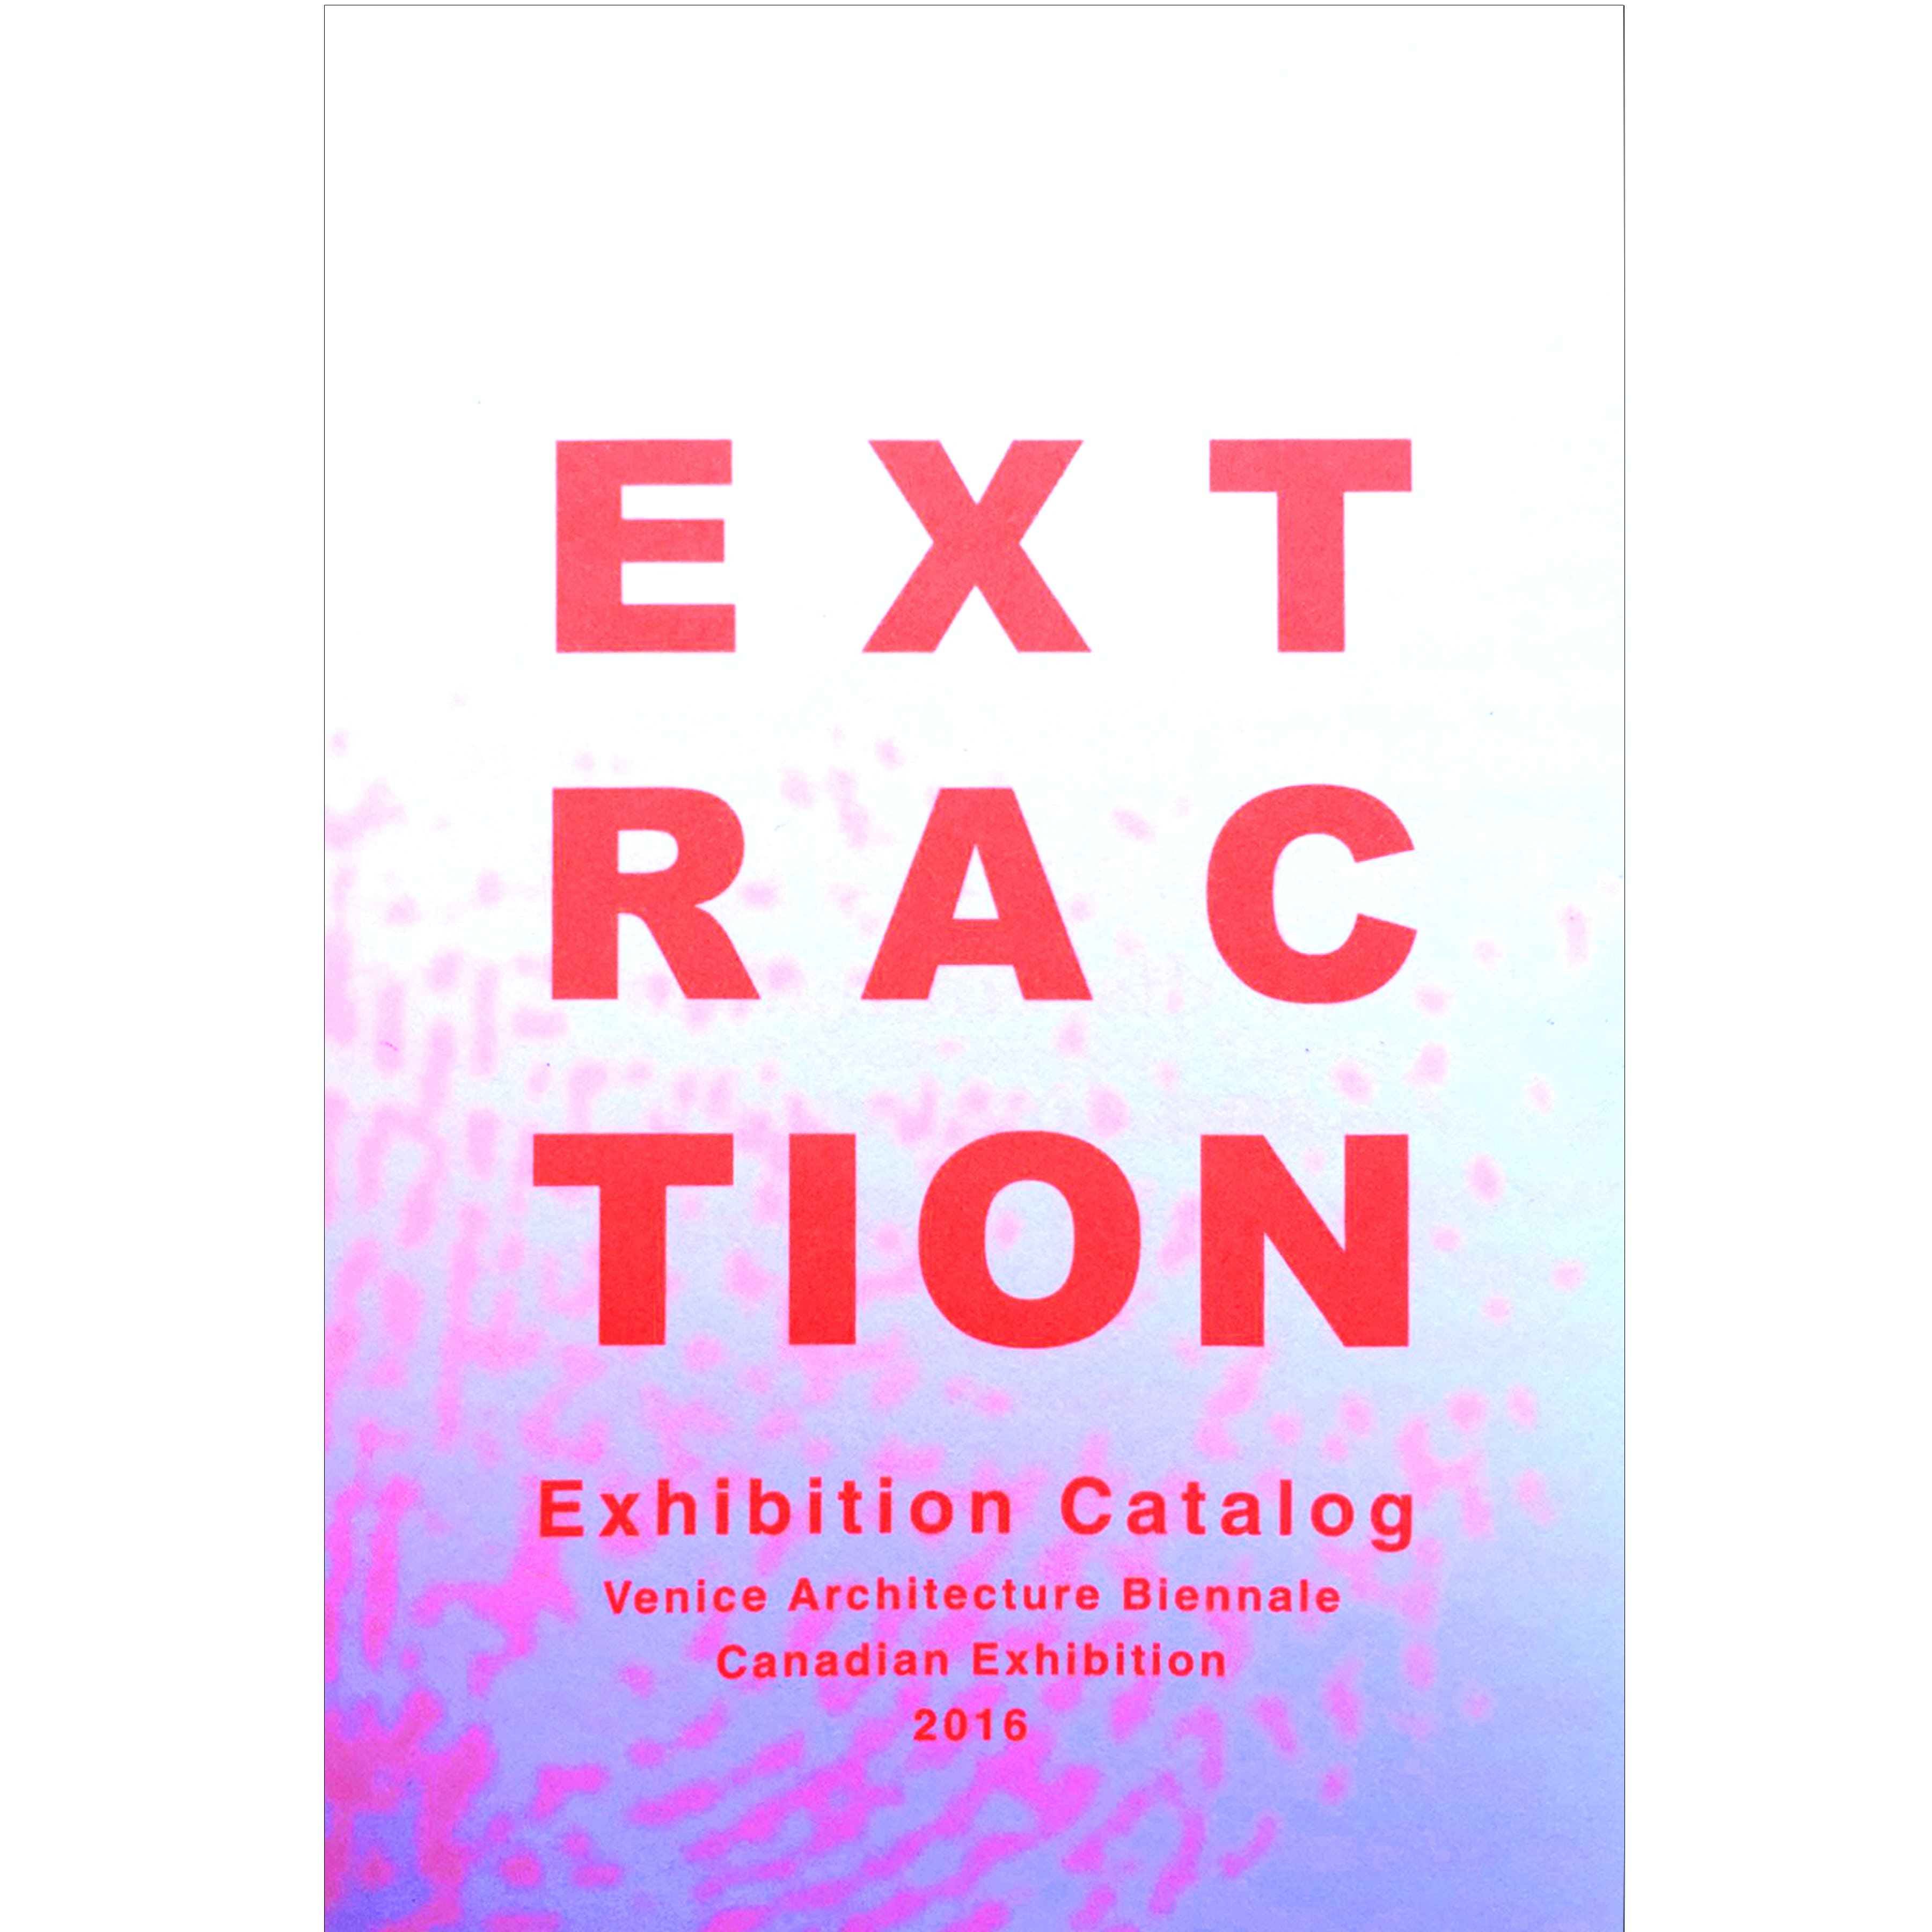 Rvtr extraction exhibition catalog